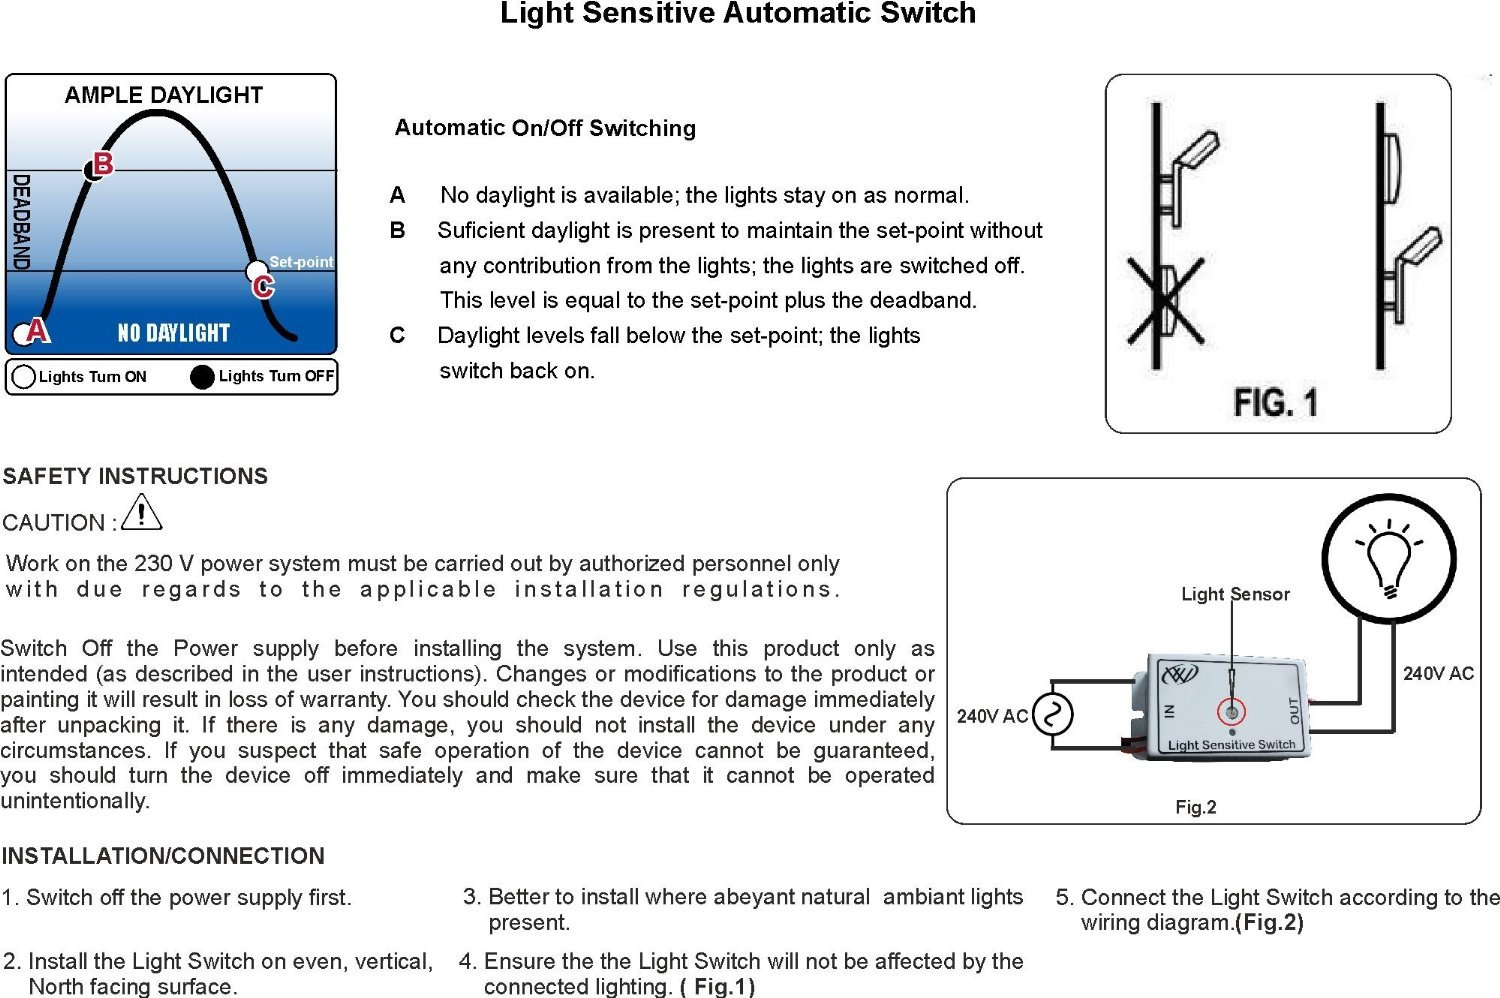 Day Night Switch Light Sensor Automatic Home Typical Pool Wiring Diagram Automation